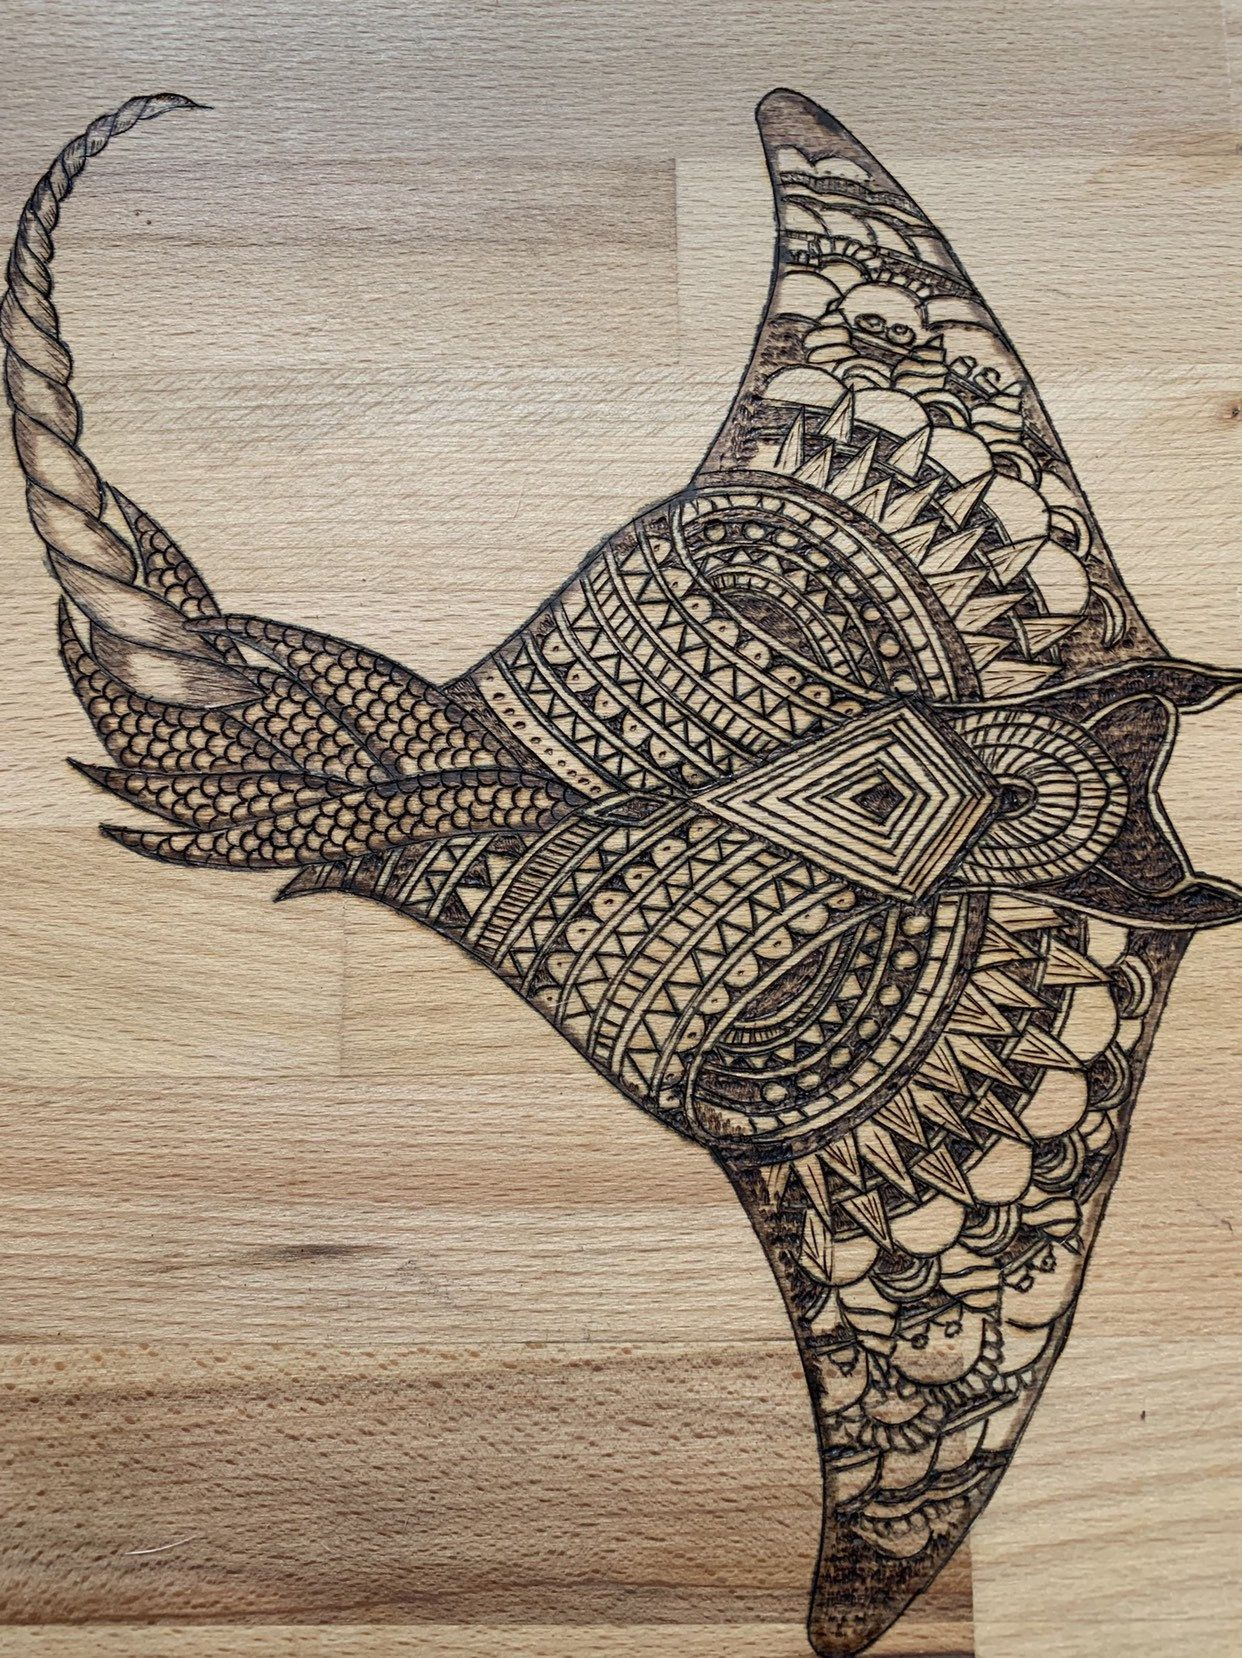 Large cutting board wood burned with a Manta Ray.